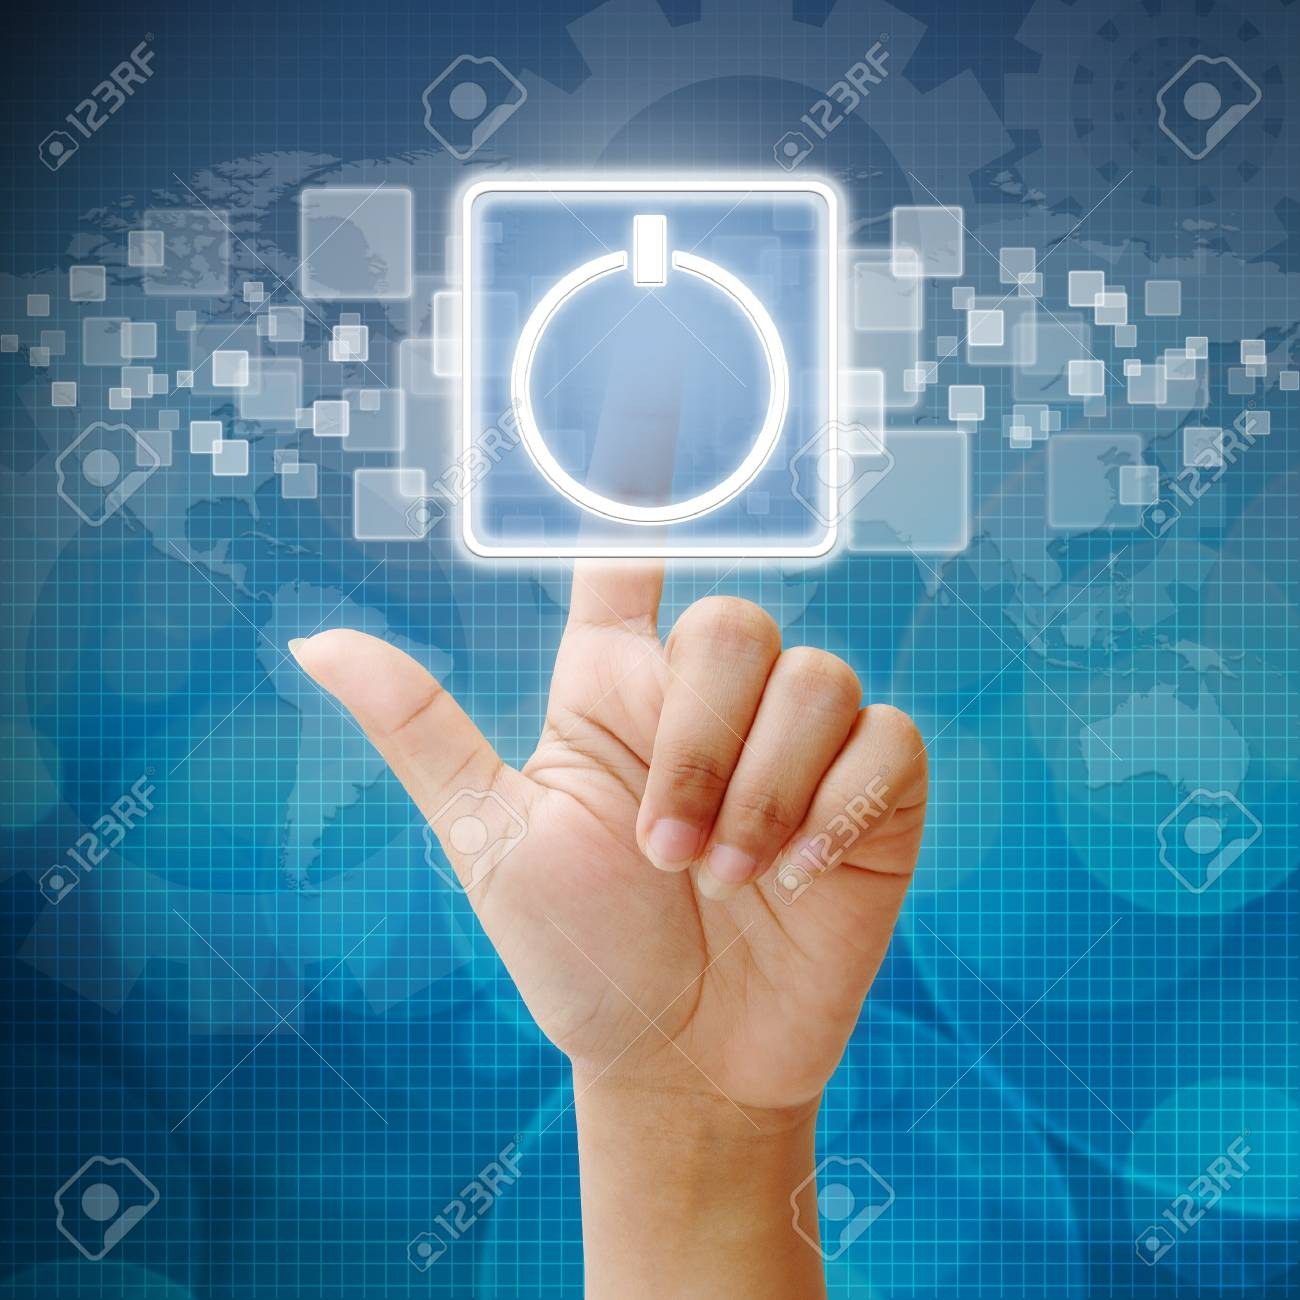 Hand press touch the Power icon Stock Photo - 15053192